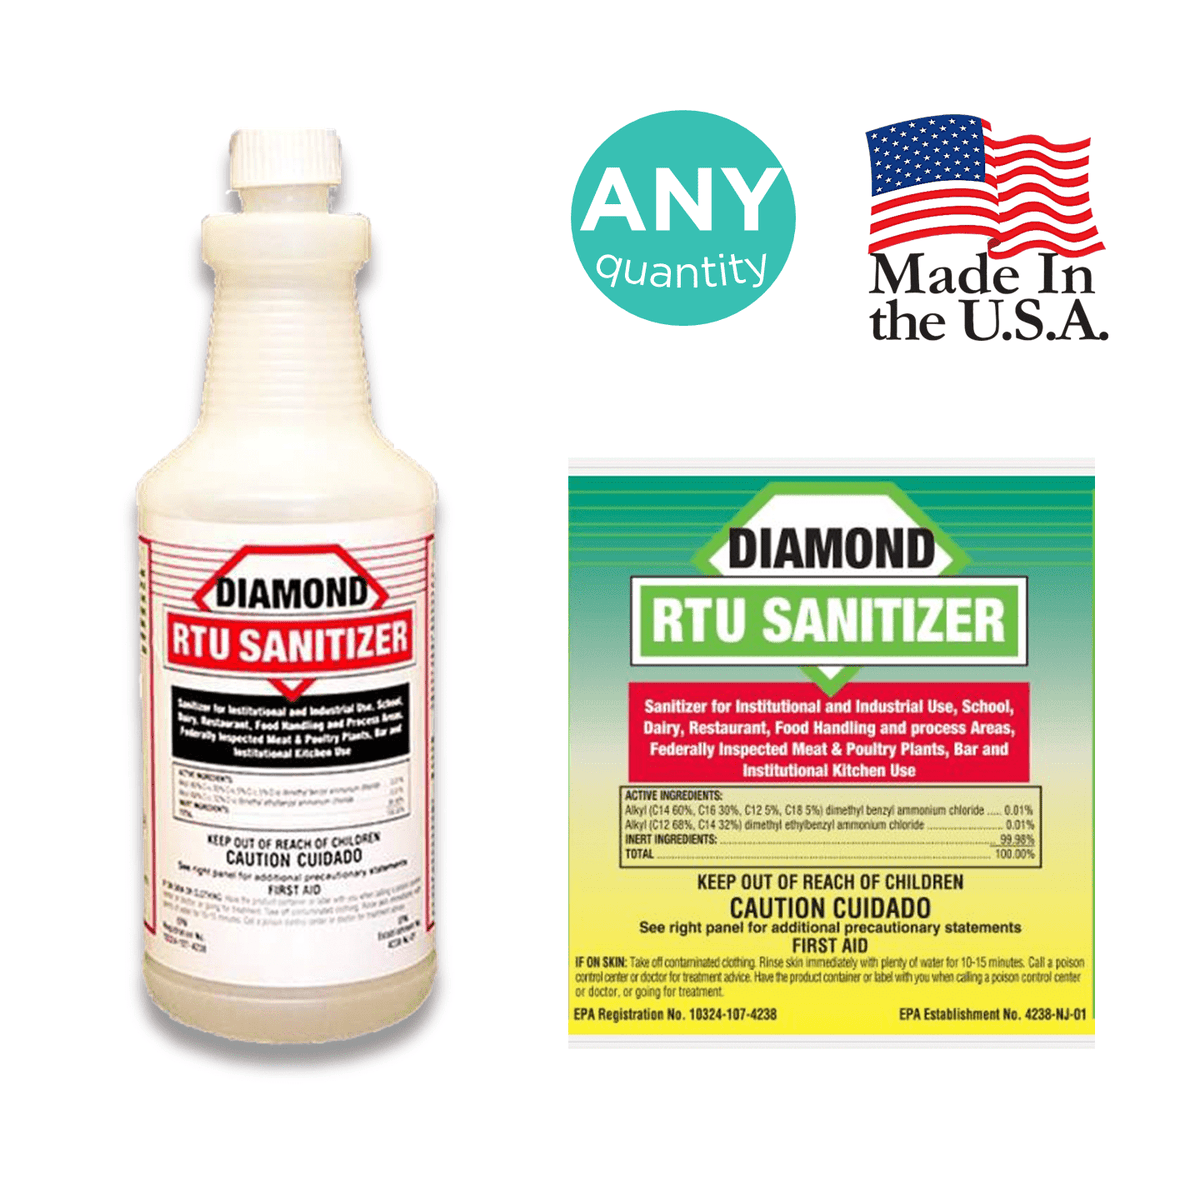 Diamond RTU Sanitizer